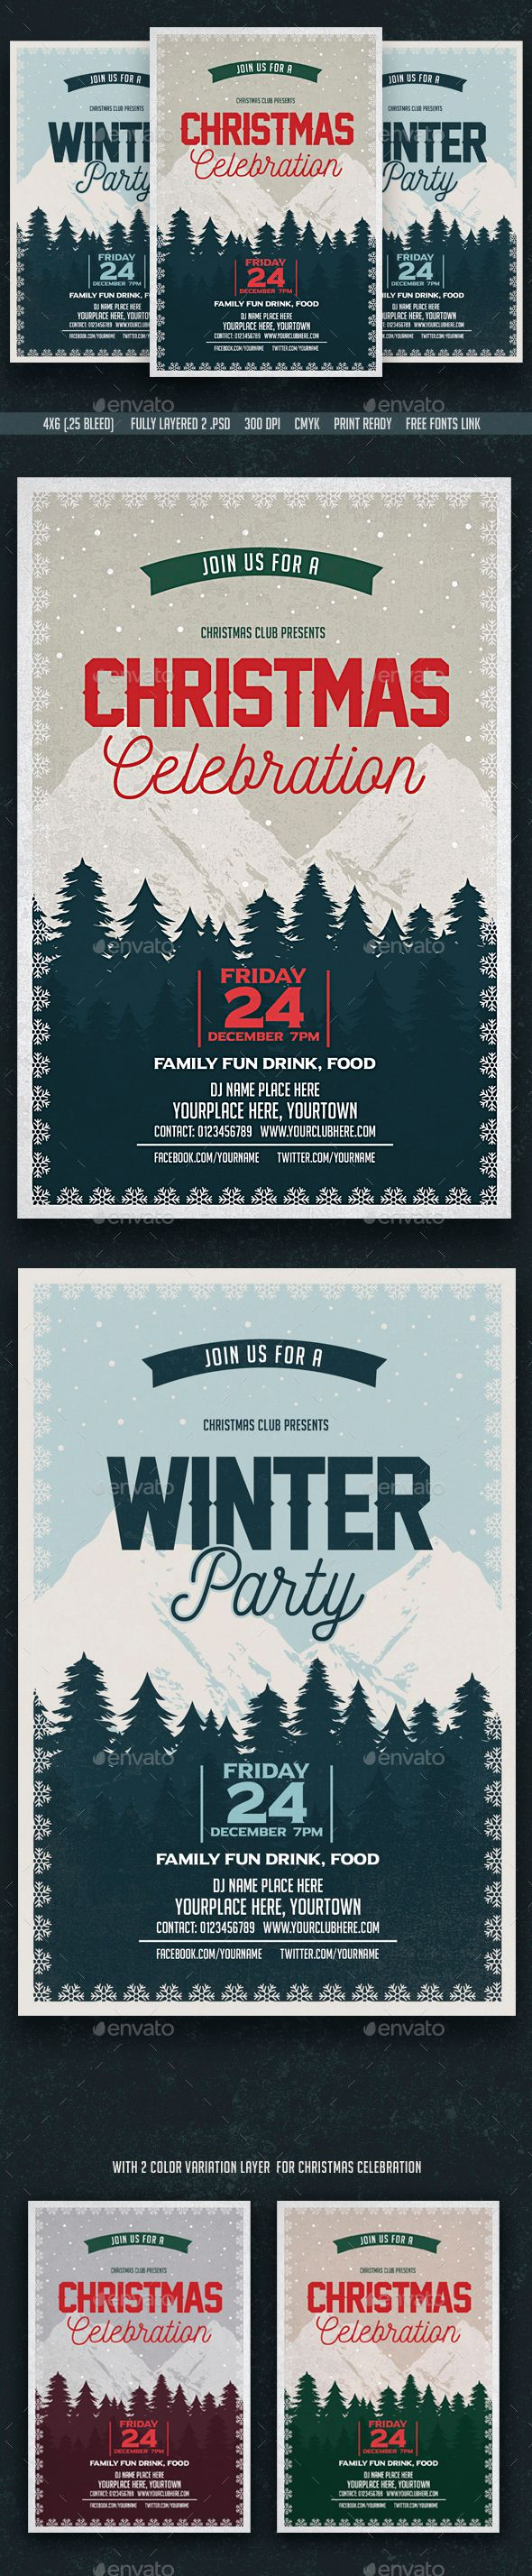 christmas celebration winter party flyer graphics party flyer christmas celebration winter party flyer template psd design xmas